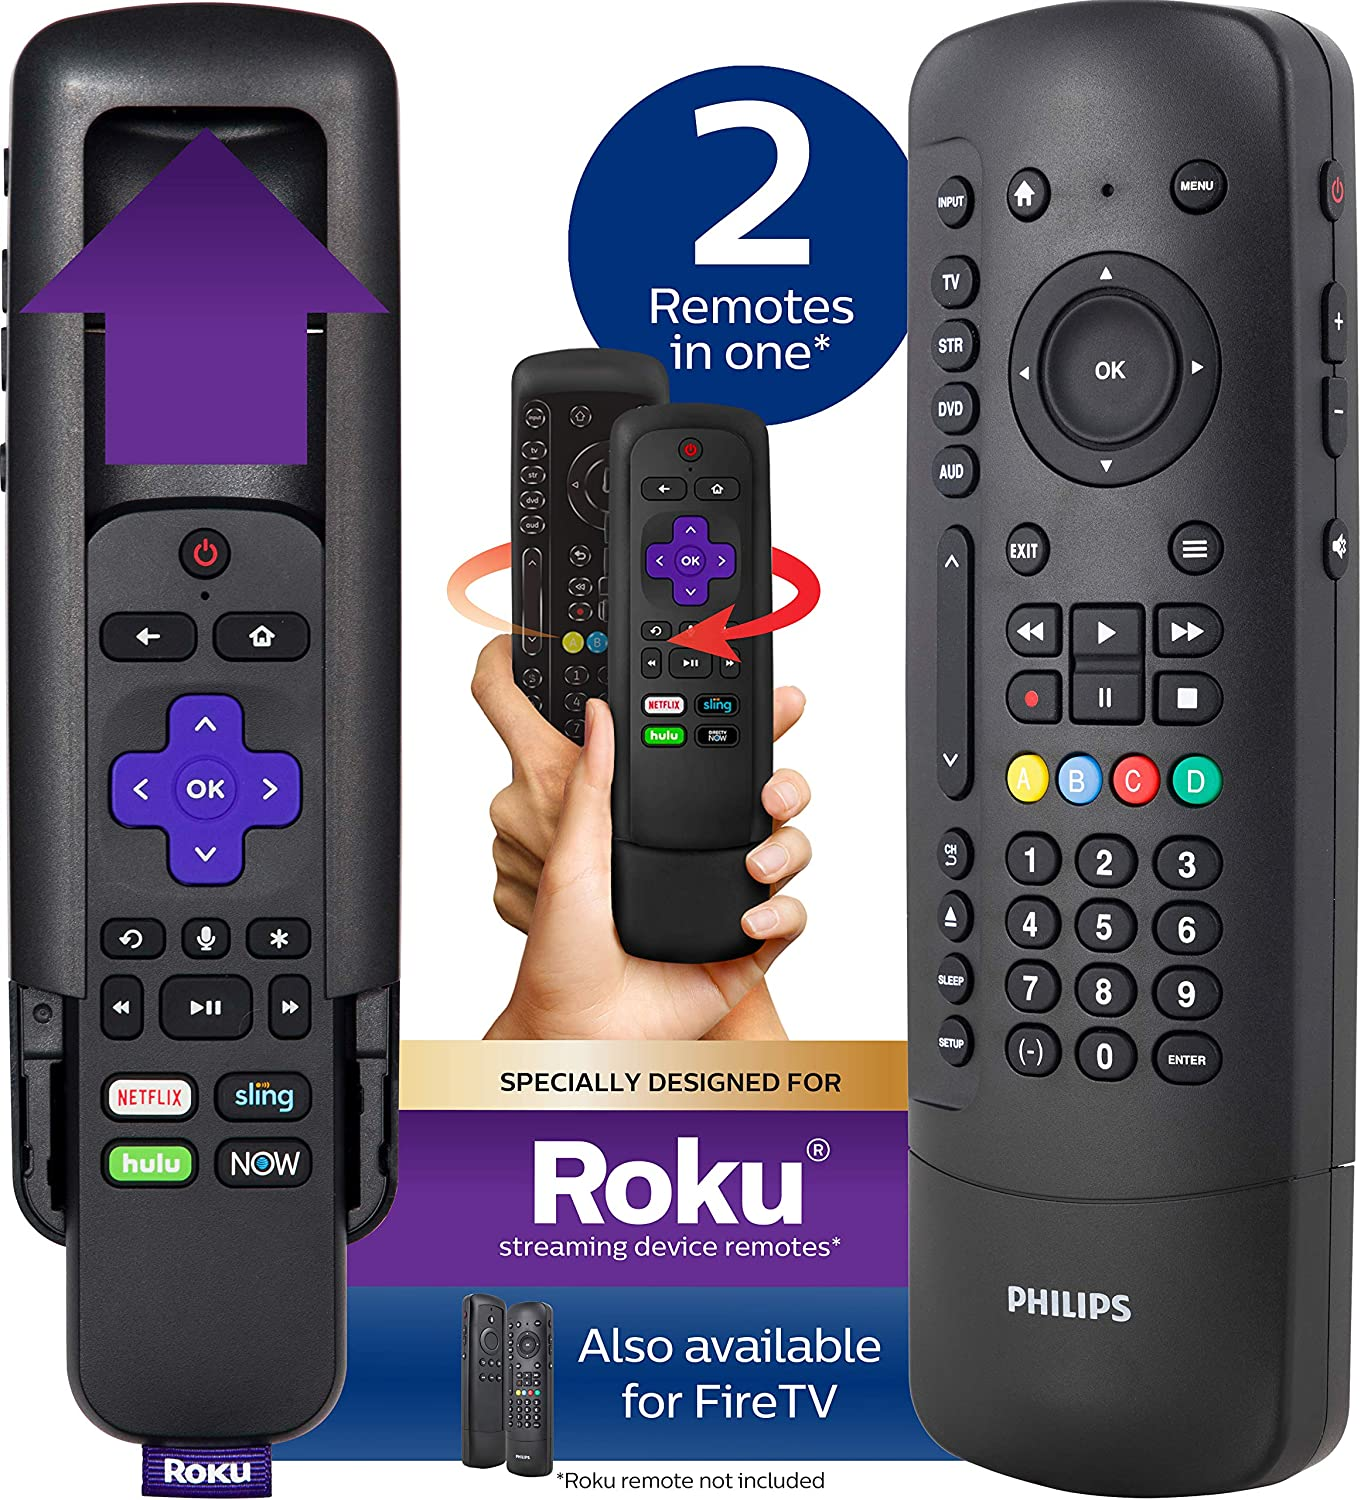 Philips Universal Companion Remote Control for Samsung, Vizio, LG, Sony, Roku, Apple TV, RCA, Panasonic, Smart TVs, Streaming Players, Blu-ray, DVD, 4 Device, Flip & Slide Roku, Black, SRP2024R/27